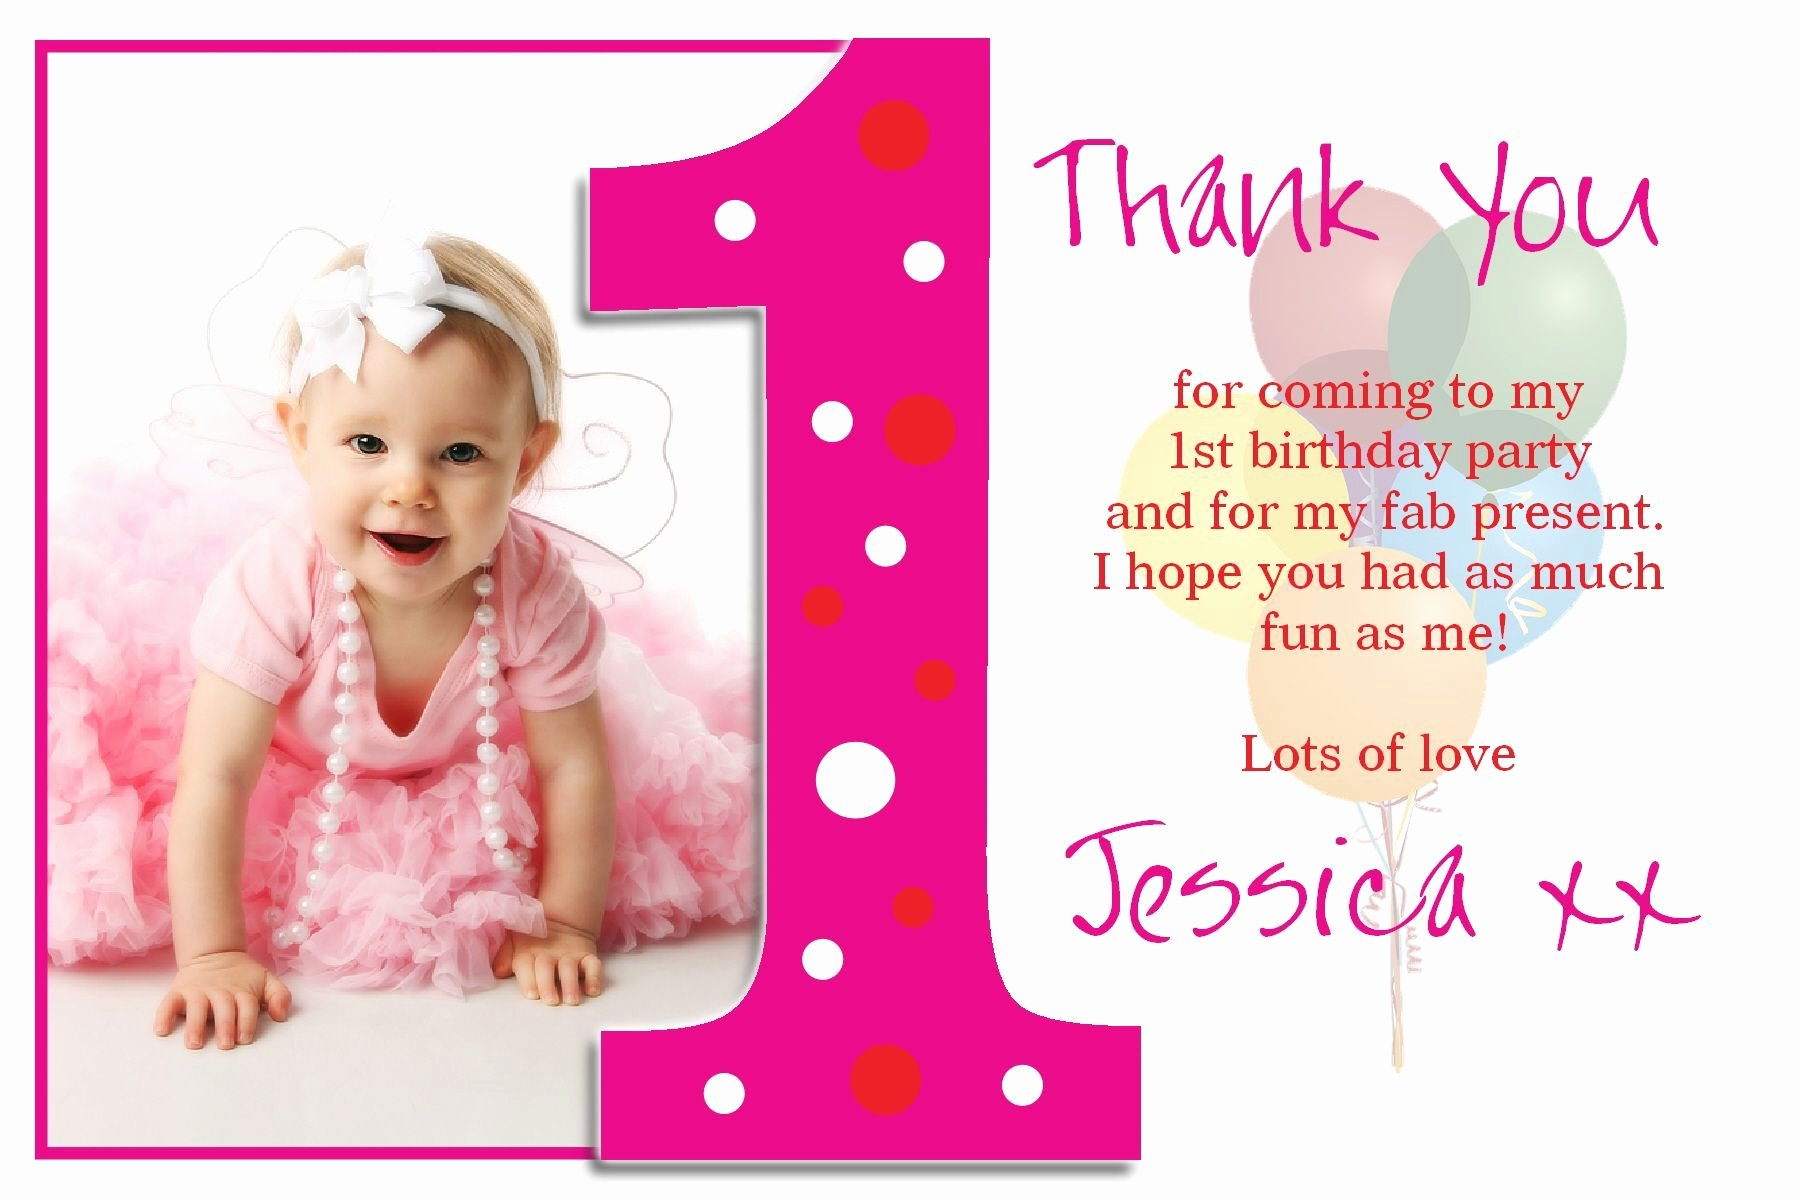 First Birthday Thank You Cards Inspirational Personalised Christening Thank You Cards Personalised Baptism Thank Piper Layne